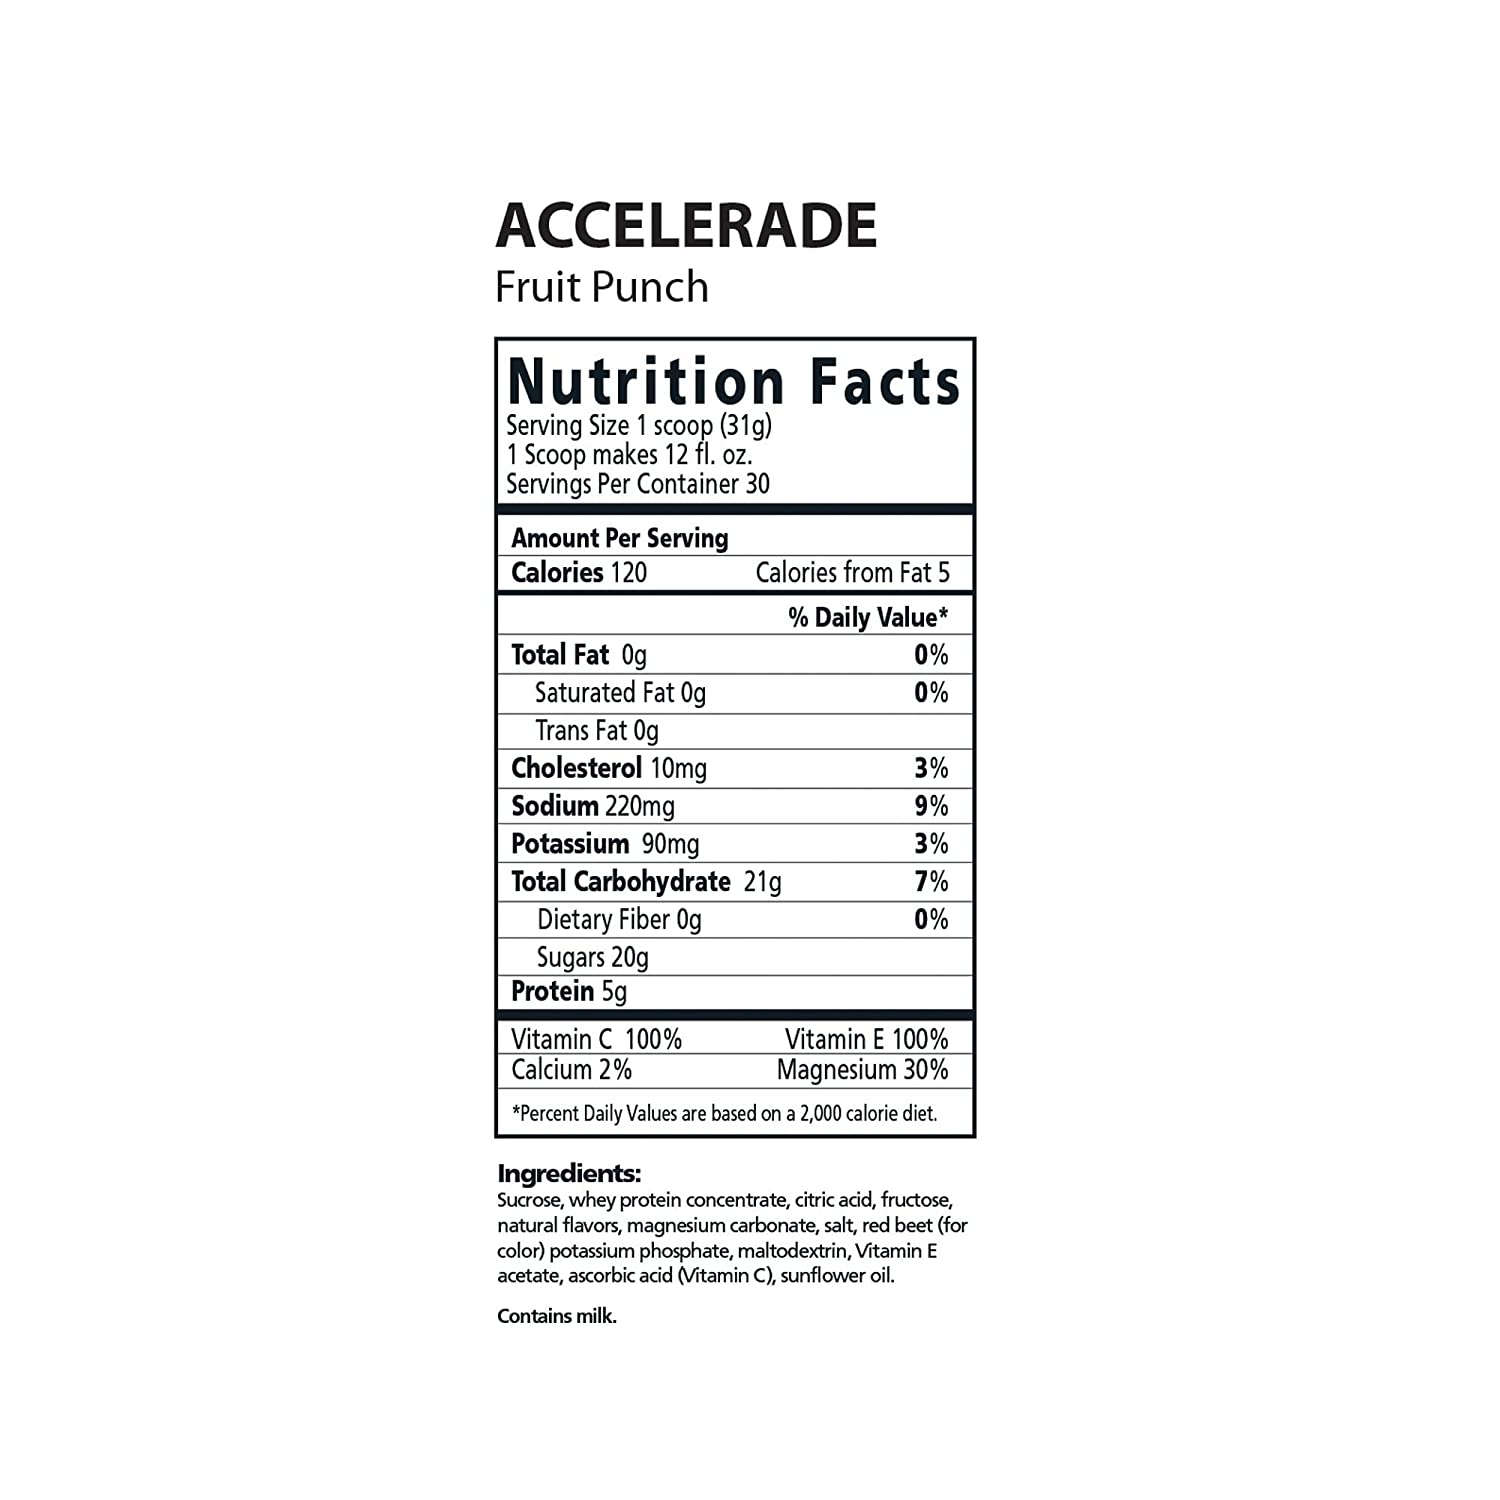 PacificHealth Accelerade, All Natural Sport Hydration Drink Mix with Protein, Carbs, and Electrolytes for Superior Energy Replenishment – Net Wt. 2.06 lb., 30 serving Fruit Punch